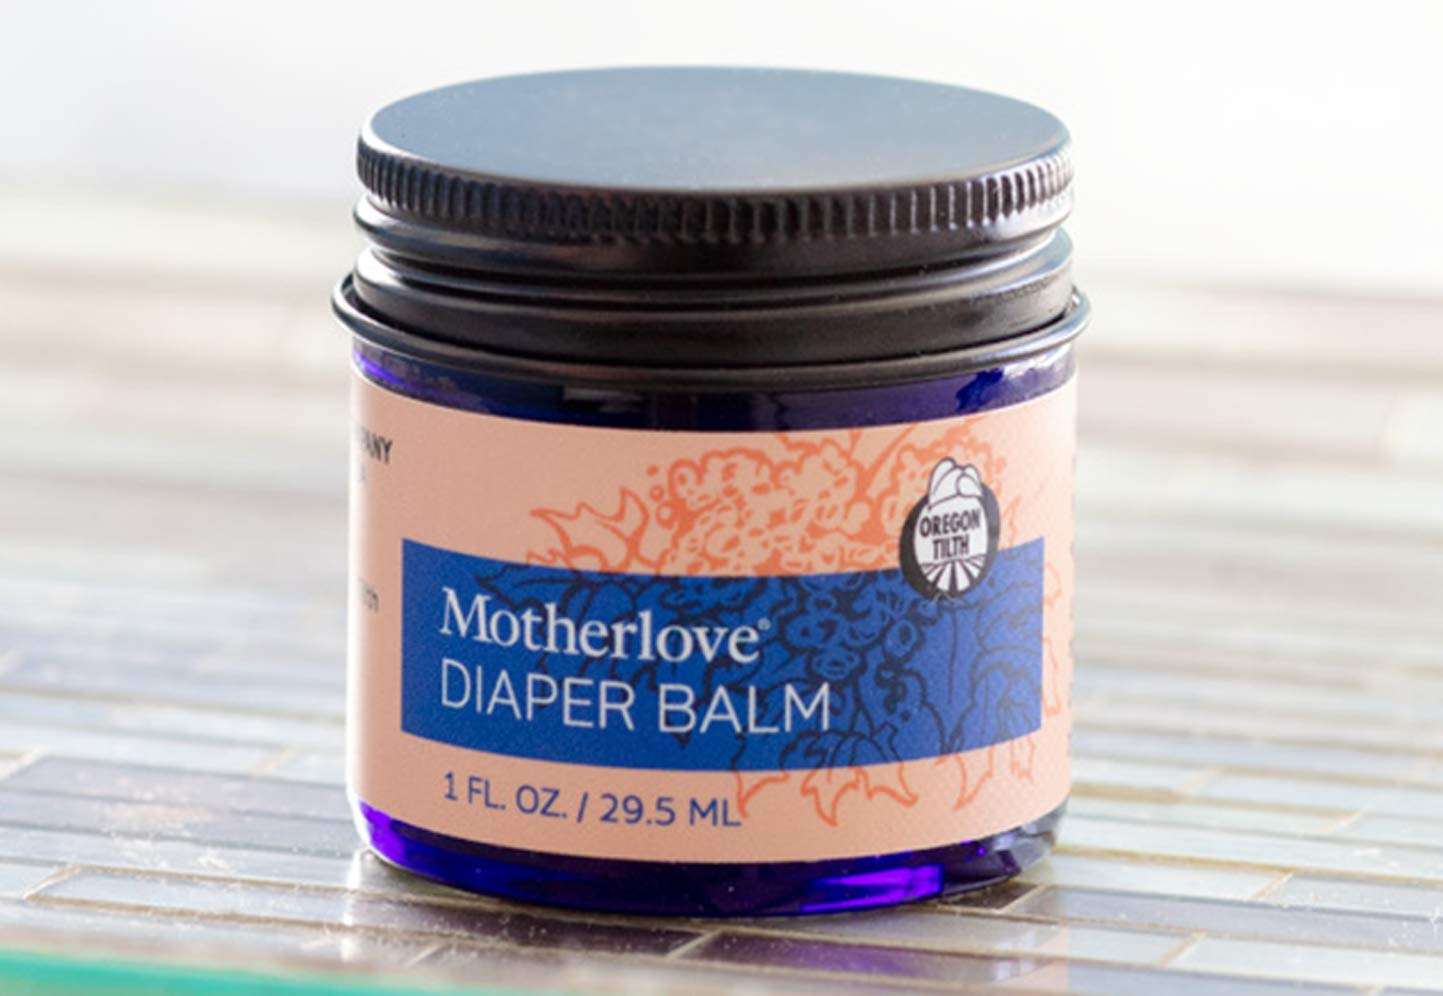 Motherlove - Diaper Balm, Antifungal & Antibacterial Herbs, Soothes Baby's Irritated Bottom, Cloth Diaper Safe Ointment, Free of Zinc Oxide & Petroleum, Formerly Known as Diaper Rash & Thrush, 1 oz. by Motherlove